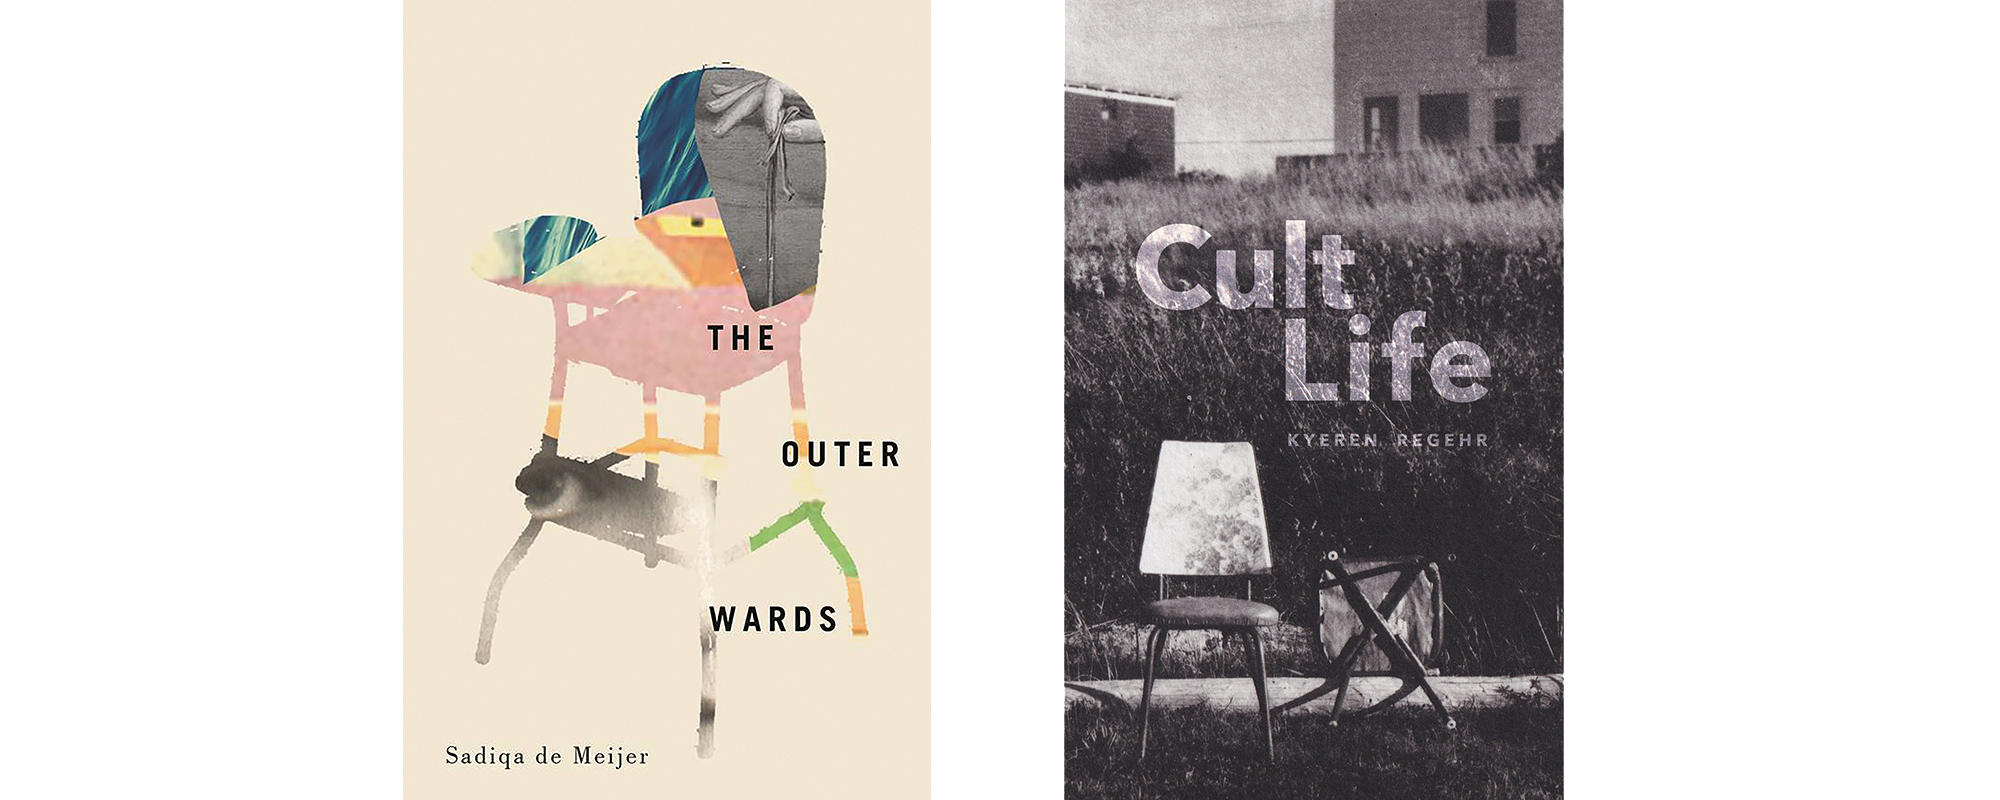 Covers for The Outer Wards and Kyeren Regehr's Cult Life